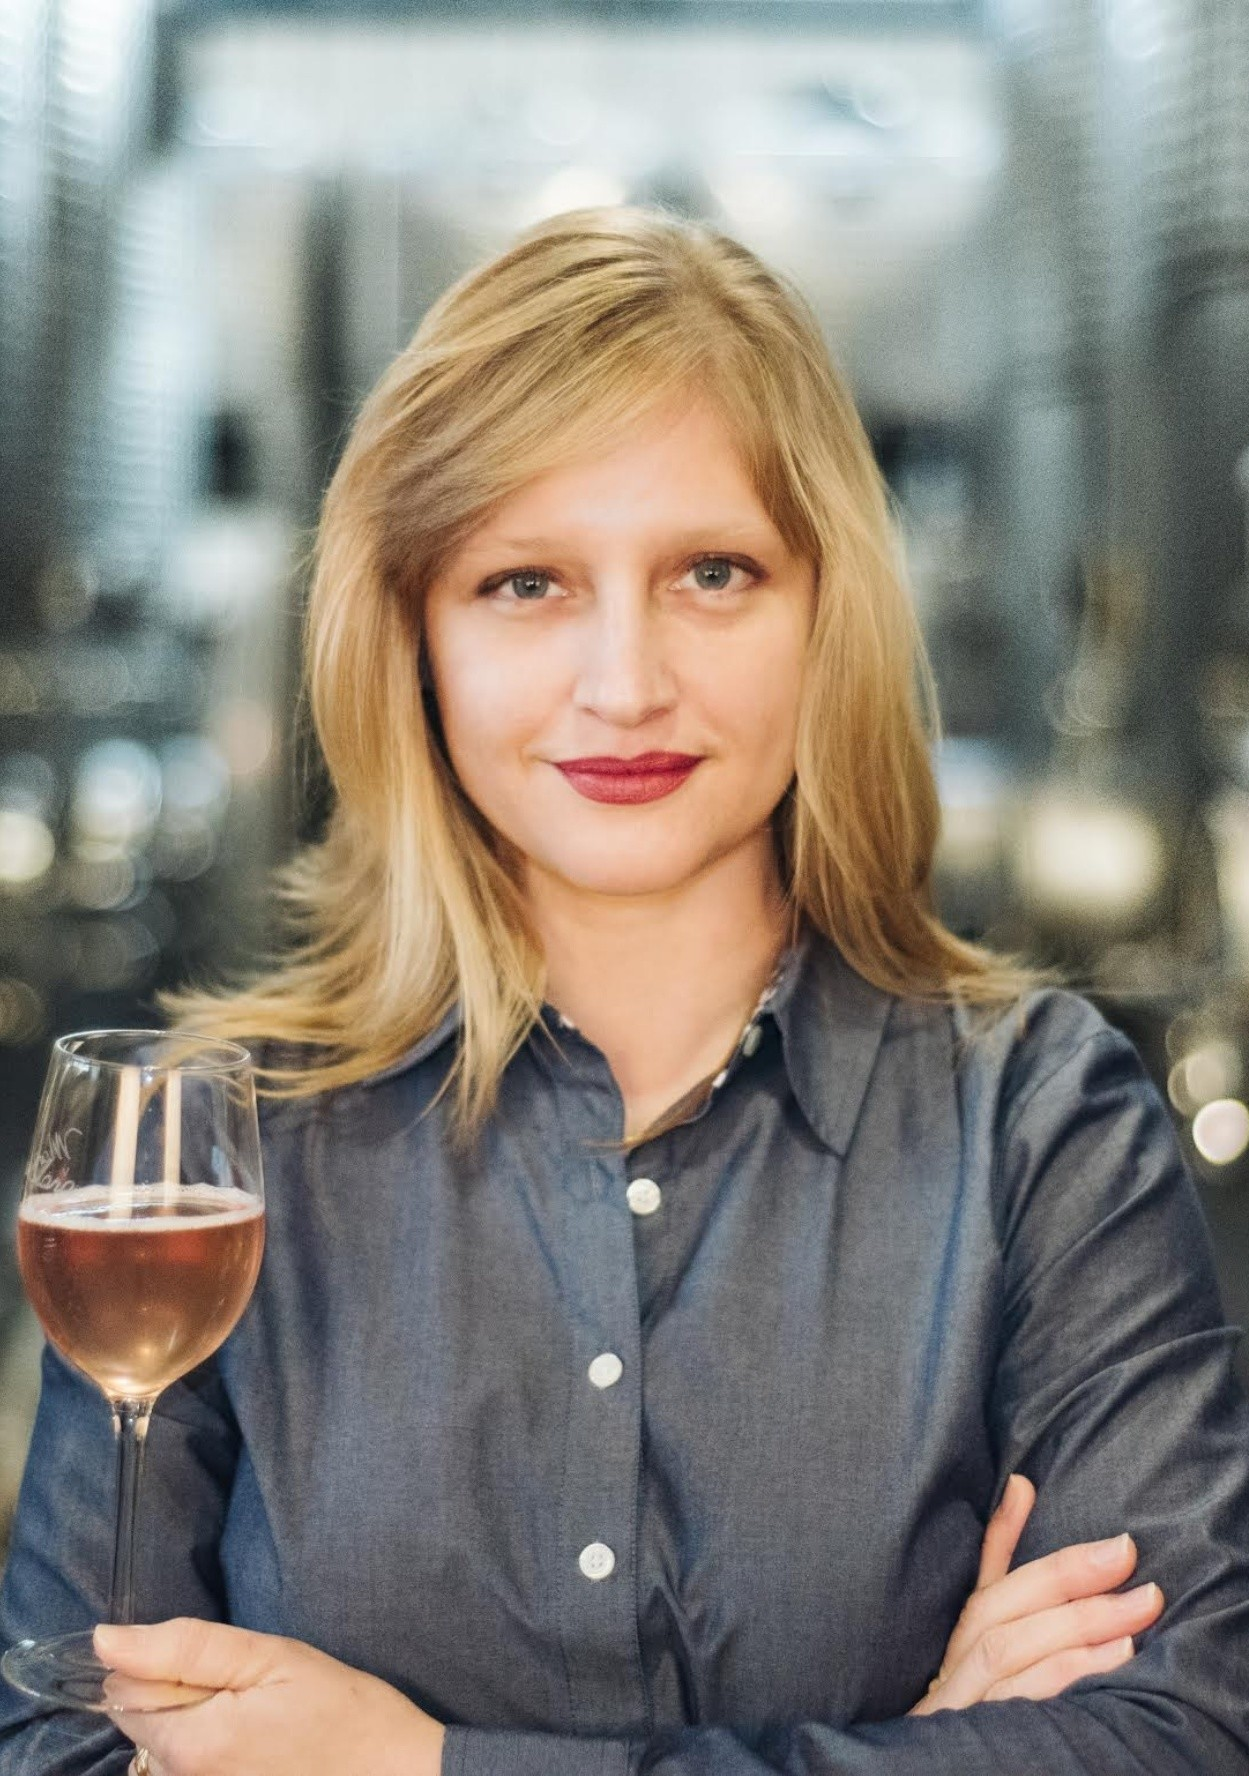 5 Women Winemakers To Know You Should Drink Their Wines